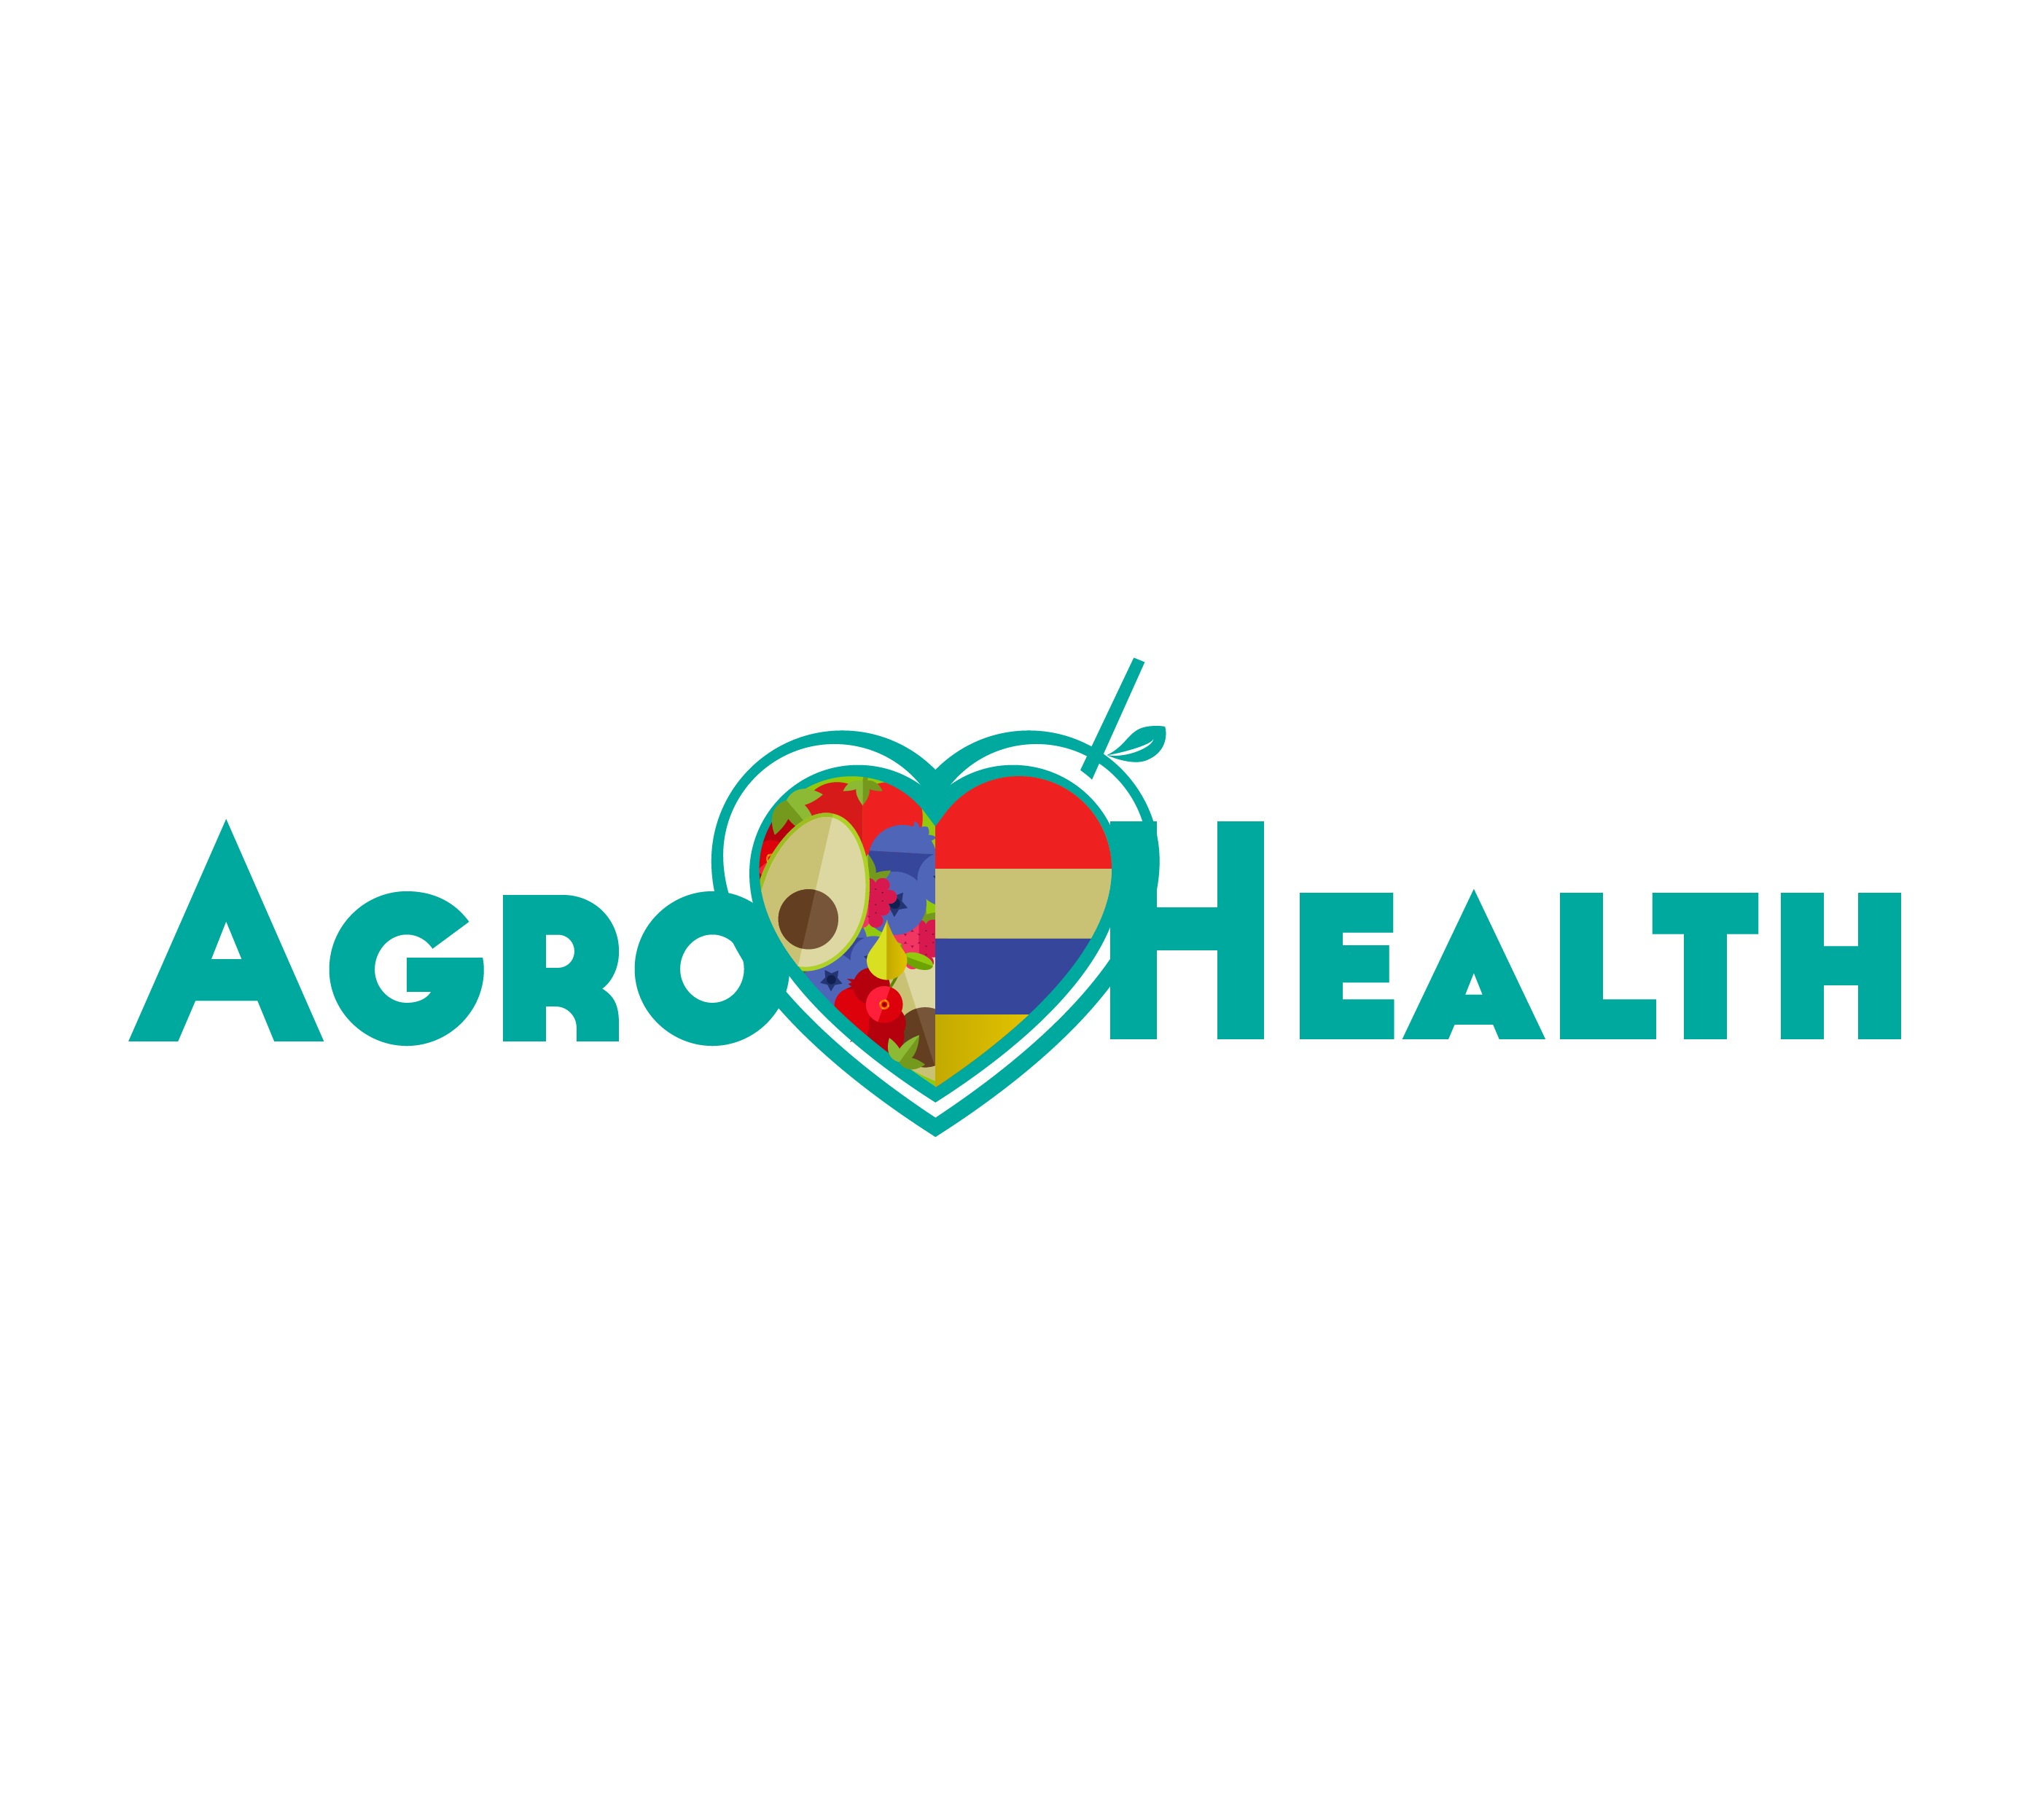 AGROHEALTH